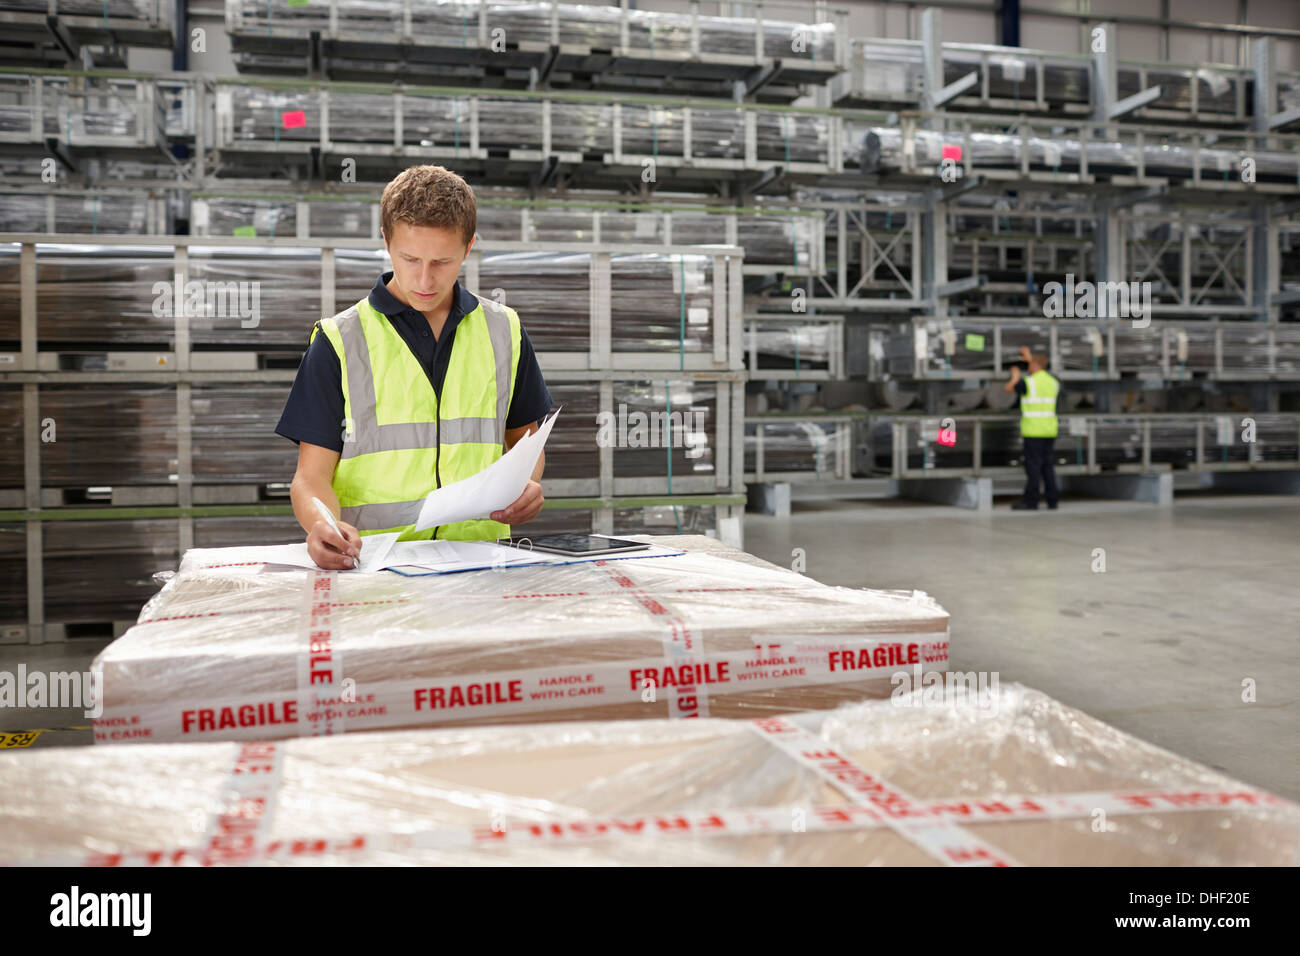 Warehouse worker checking order in engineering warehouse - Stock Image